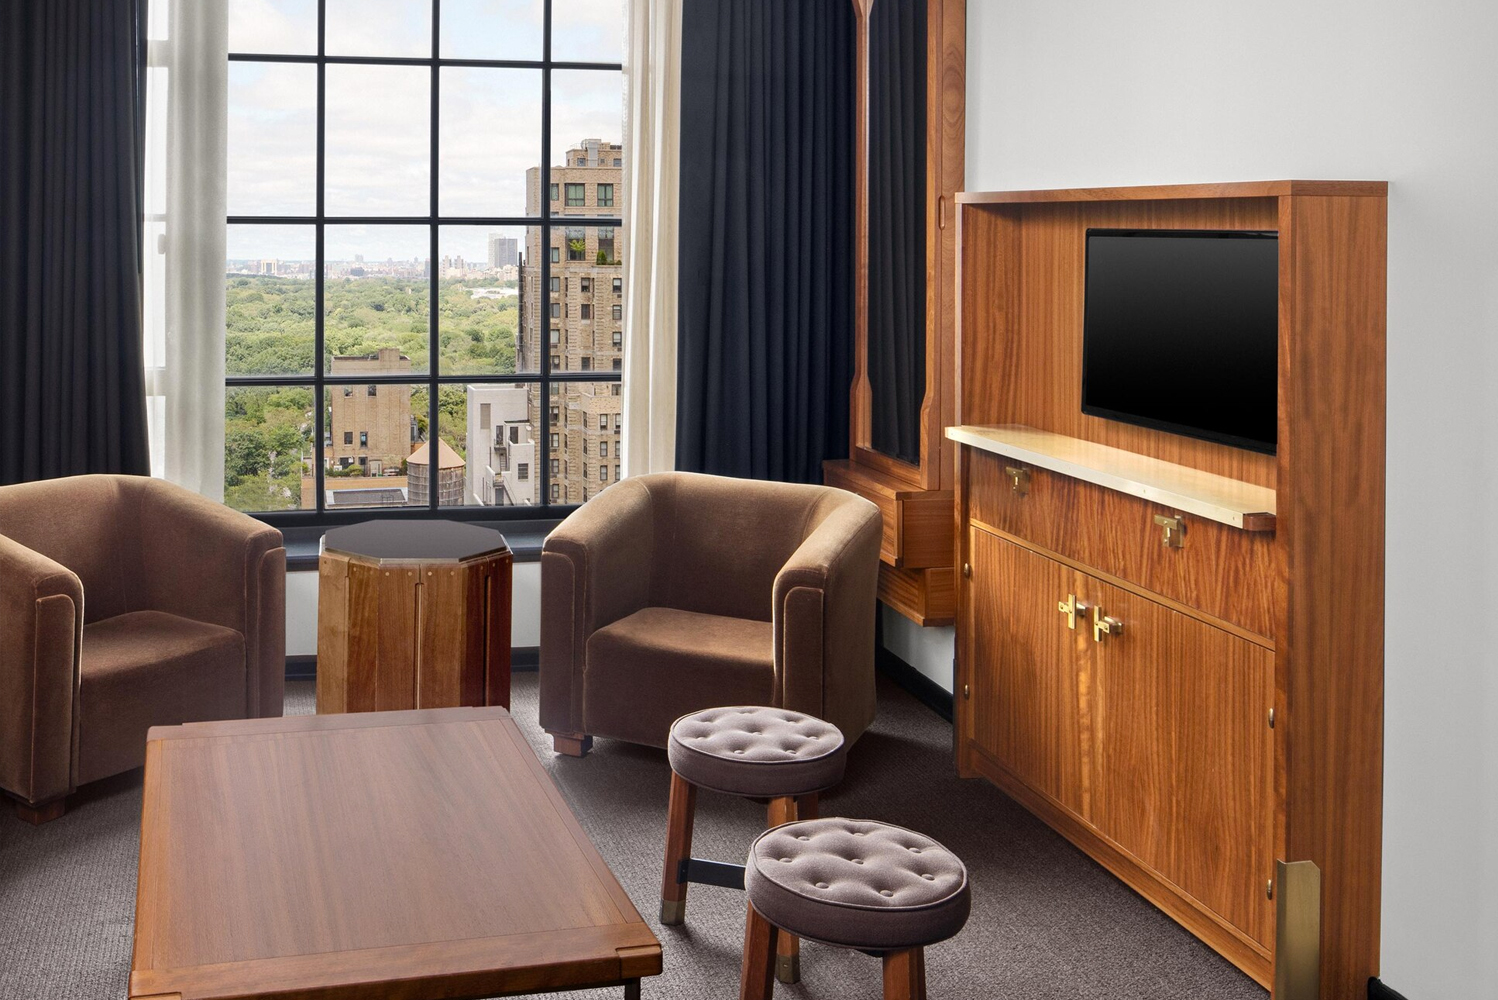 Accommodations and suites on 28 floors offer views of Central Park and are adorned with gold finishes and marble surfaces.